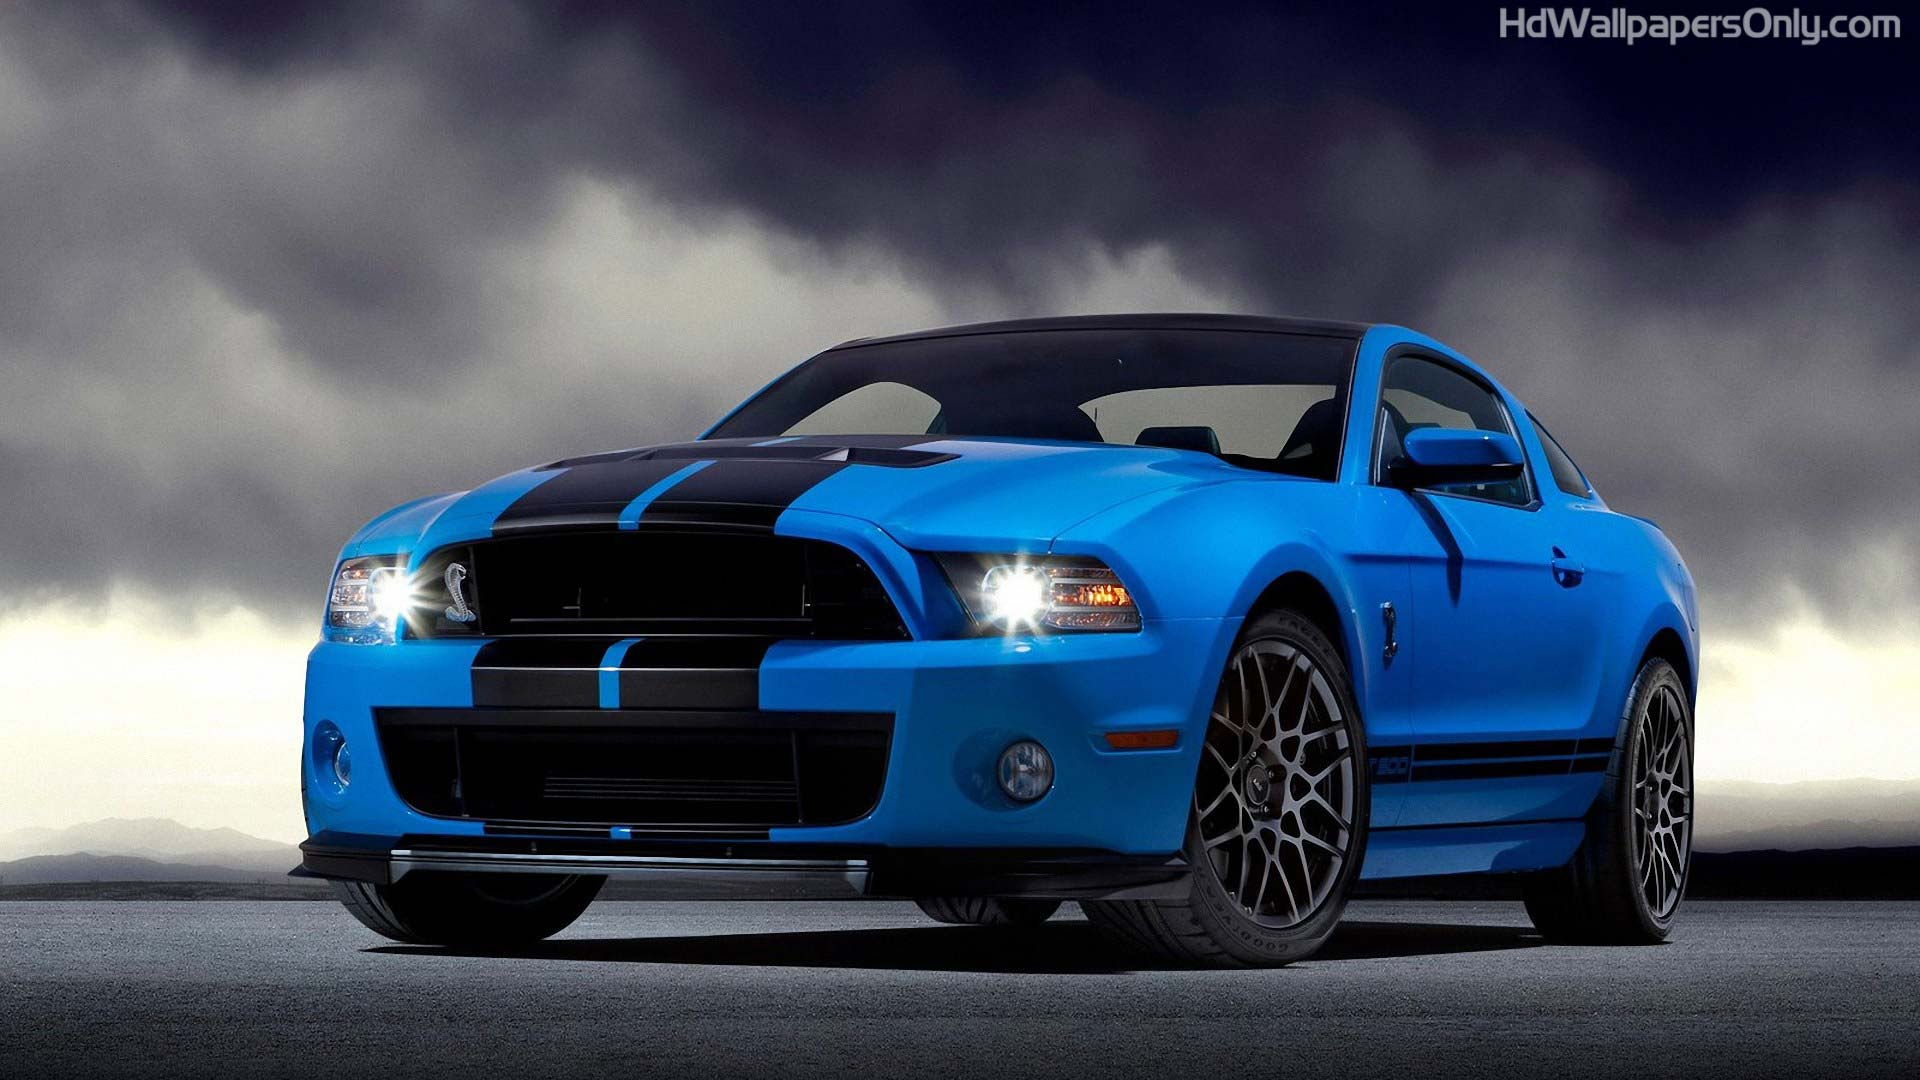 Hd wallpapers of cars - Wallpapers Car Cars 1920x1080 Px 658 Wallpapers Car Cars Hd